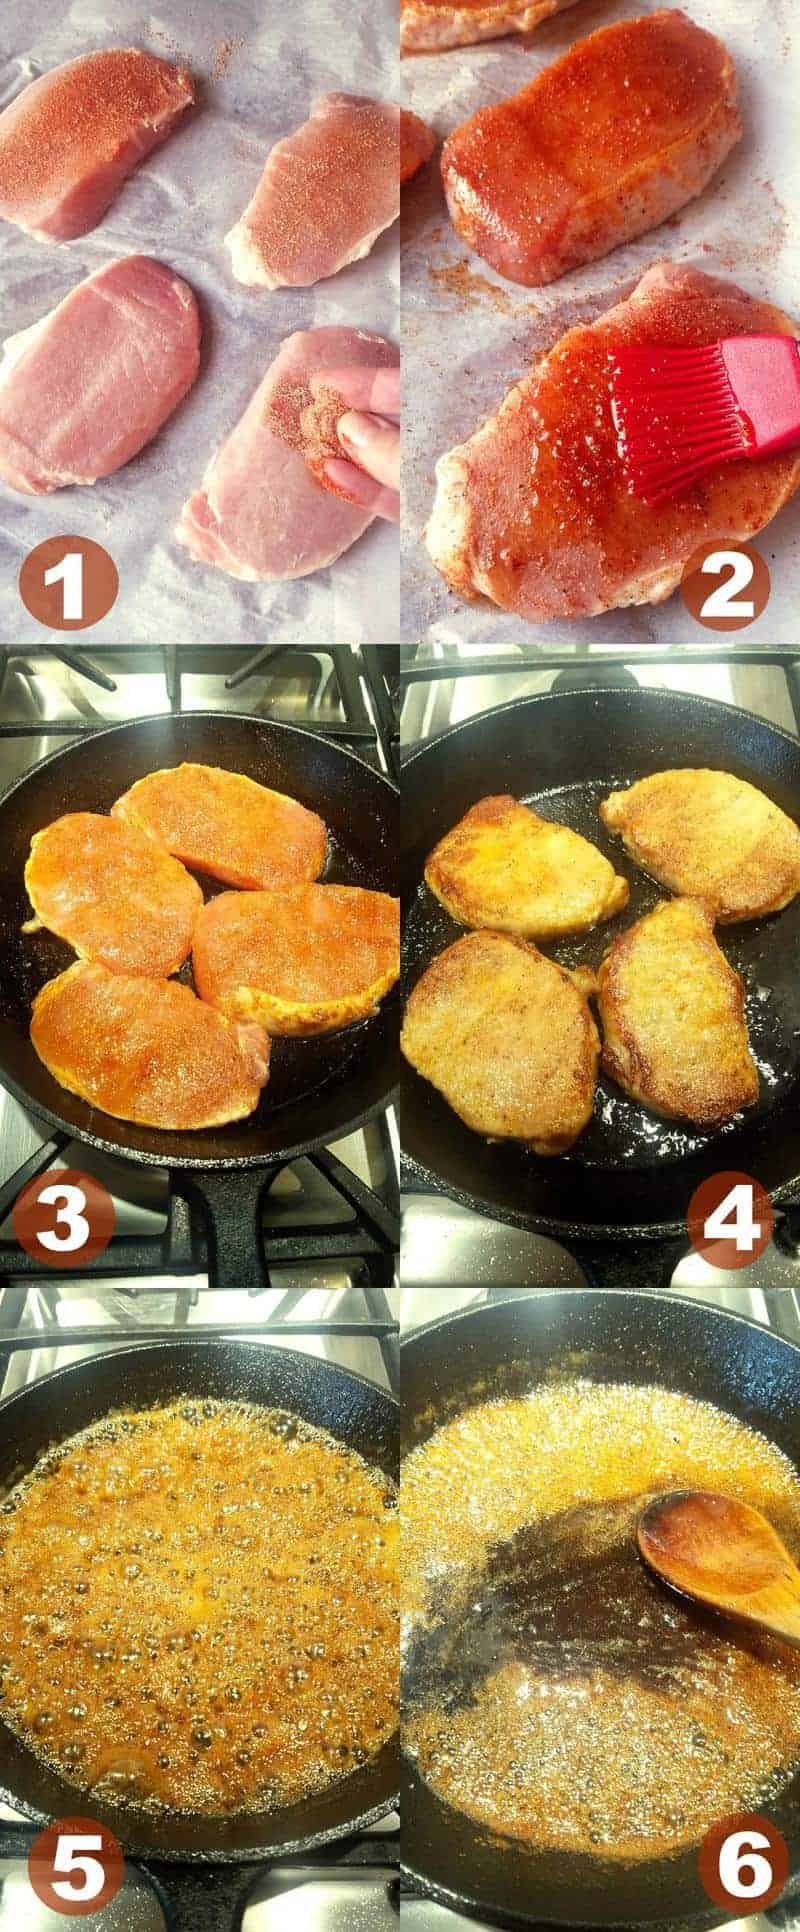 six collage images showing how to make broiled pork chops